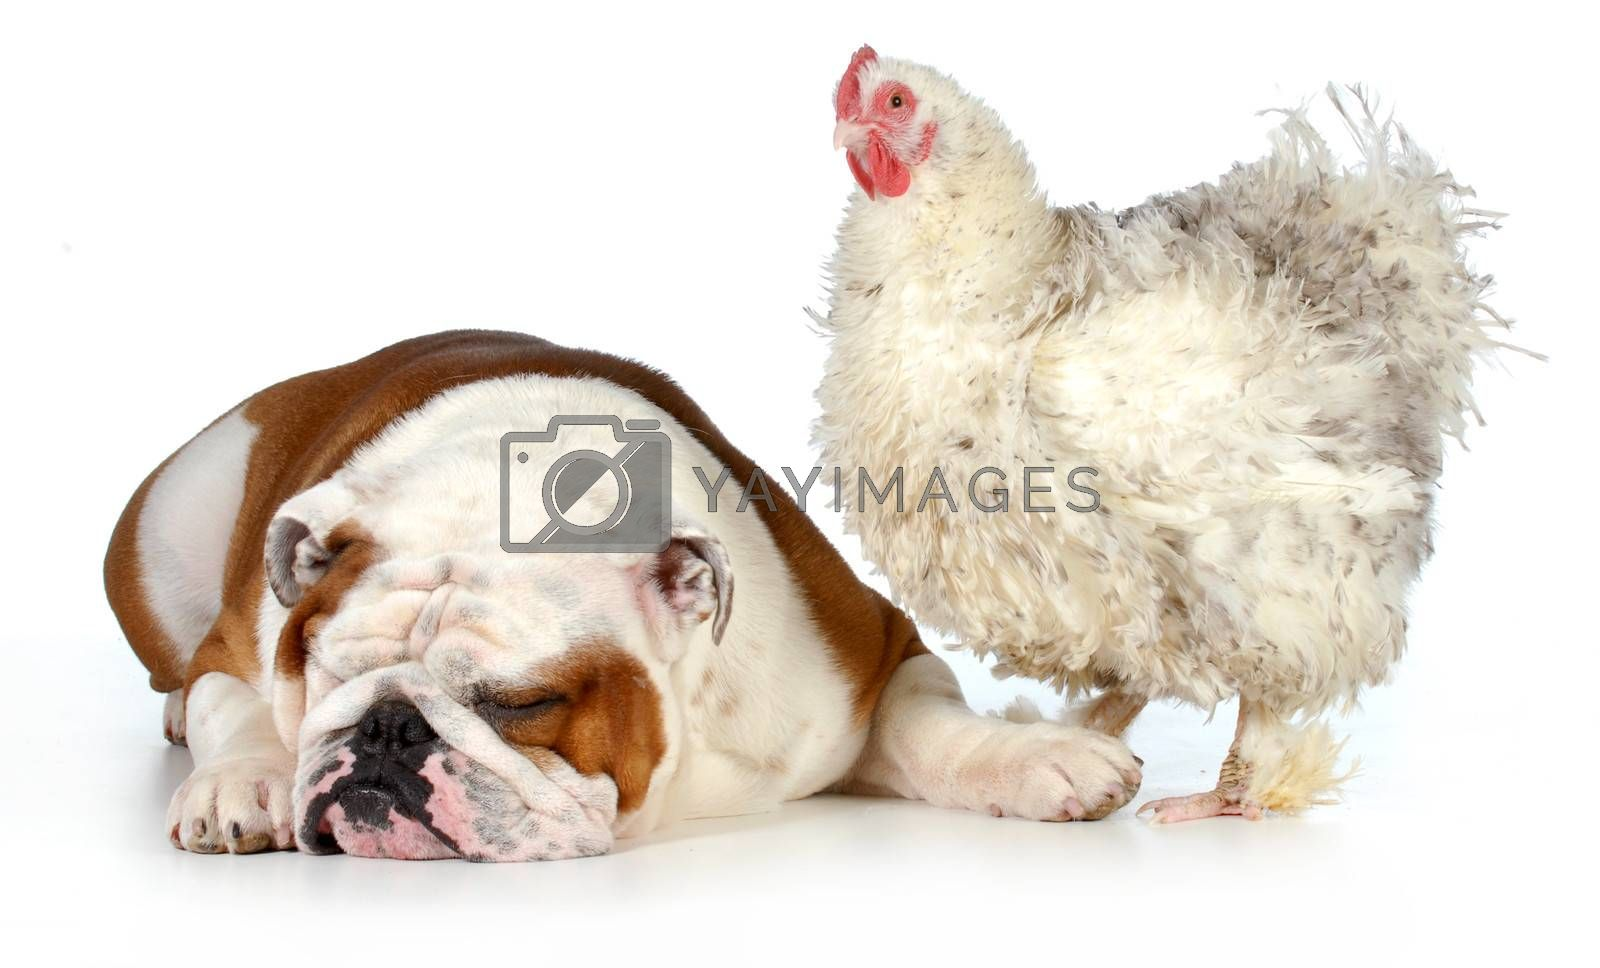 two animals - farm chicken and english bulldog together isolated on white background